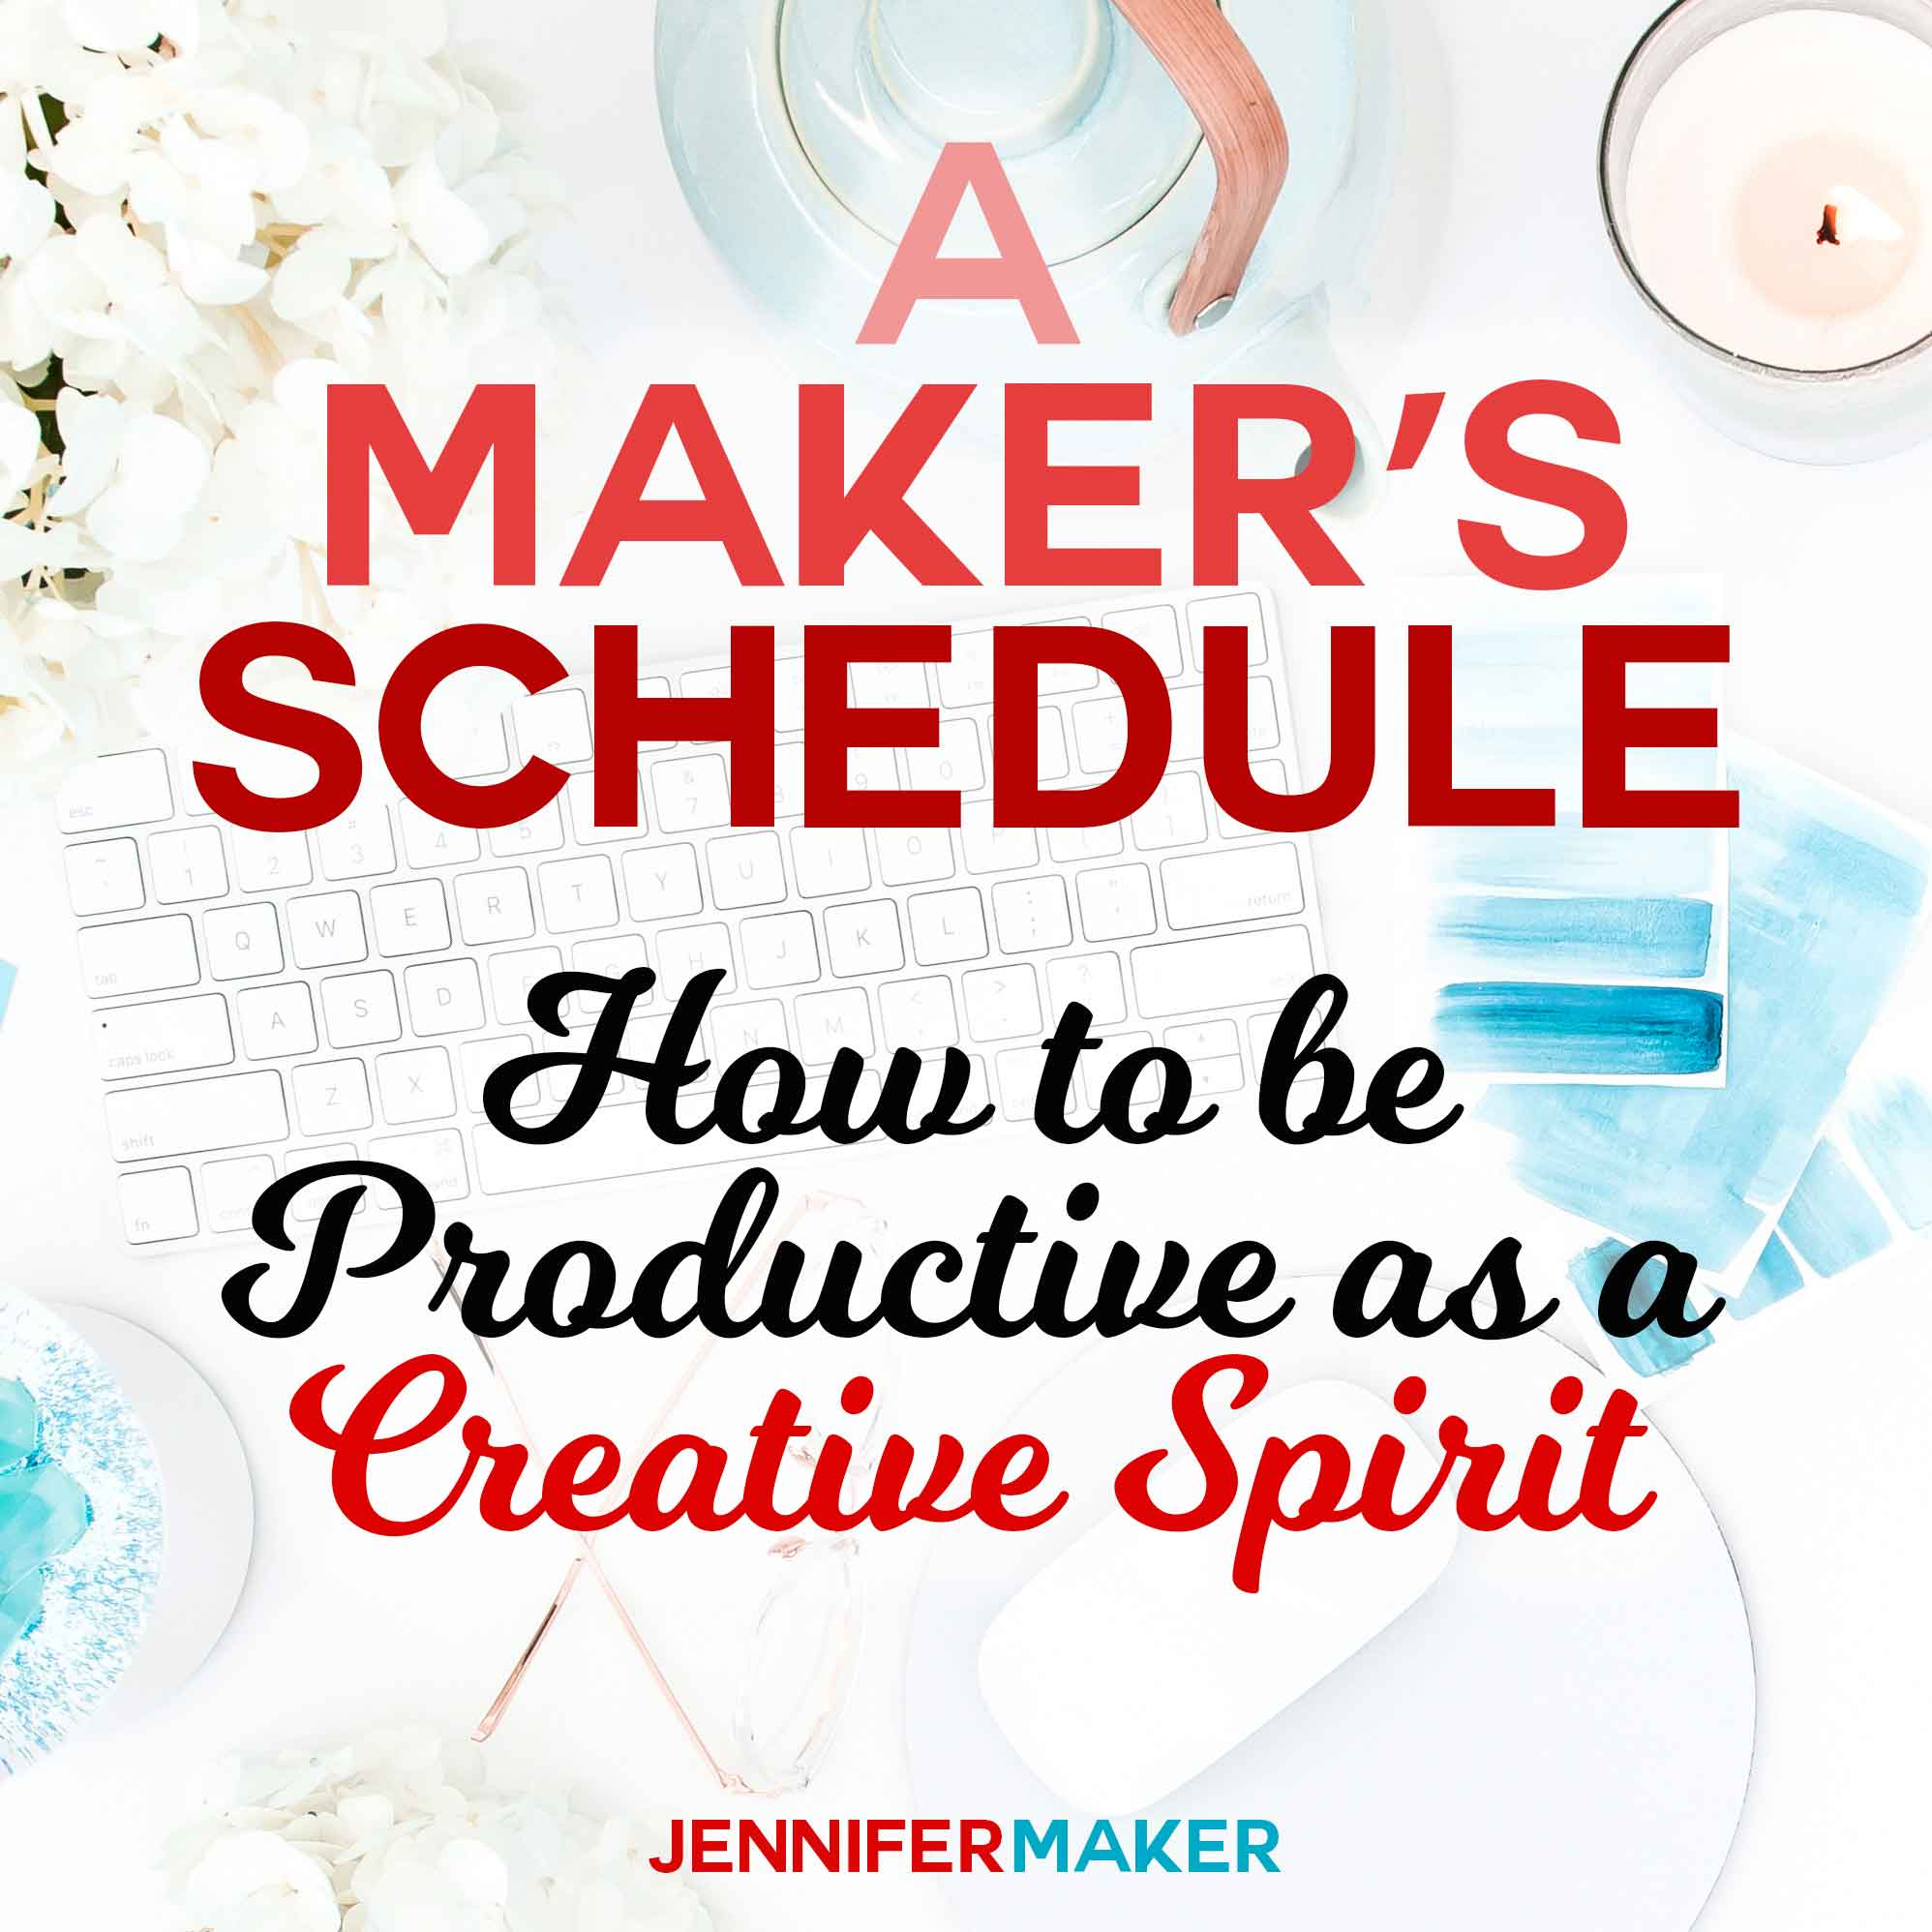 a maker s schedule how to be productive as a creative spirit